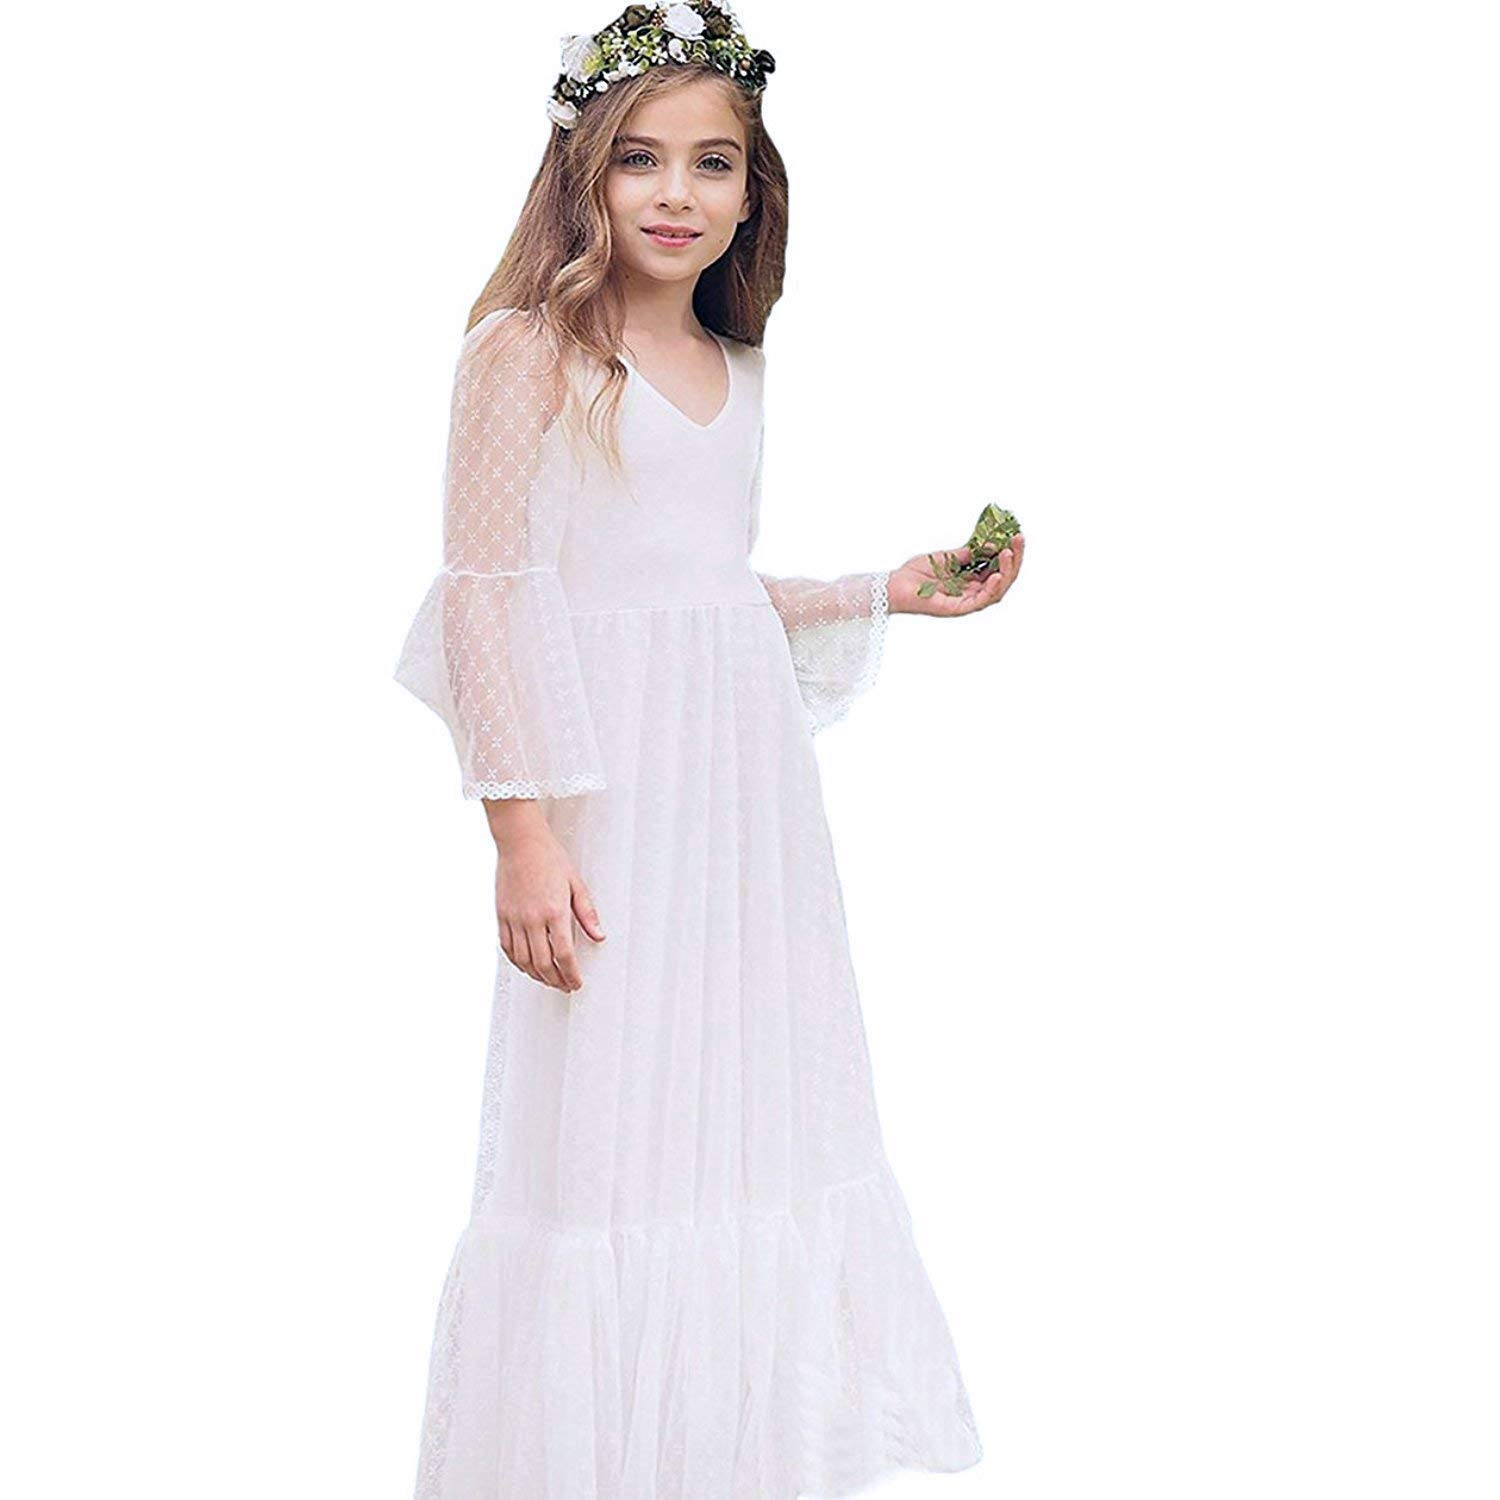 Victorian Kids Costumes & Shoes- Girls, Boys, Baby, Toddler Boho-Chic Flower Girl Dress Lace First Communion Dresses $39.99 AT vintagedancer.com